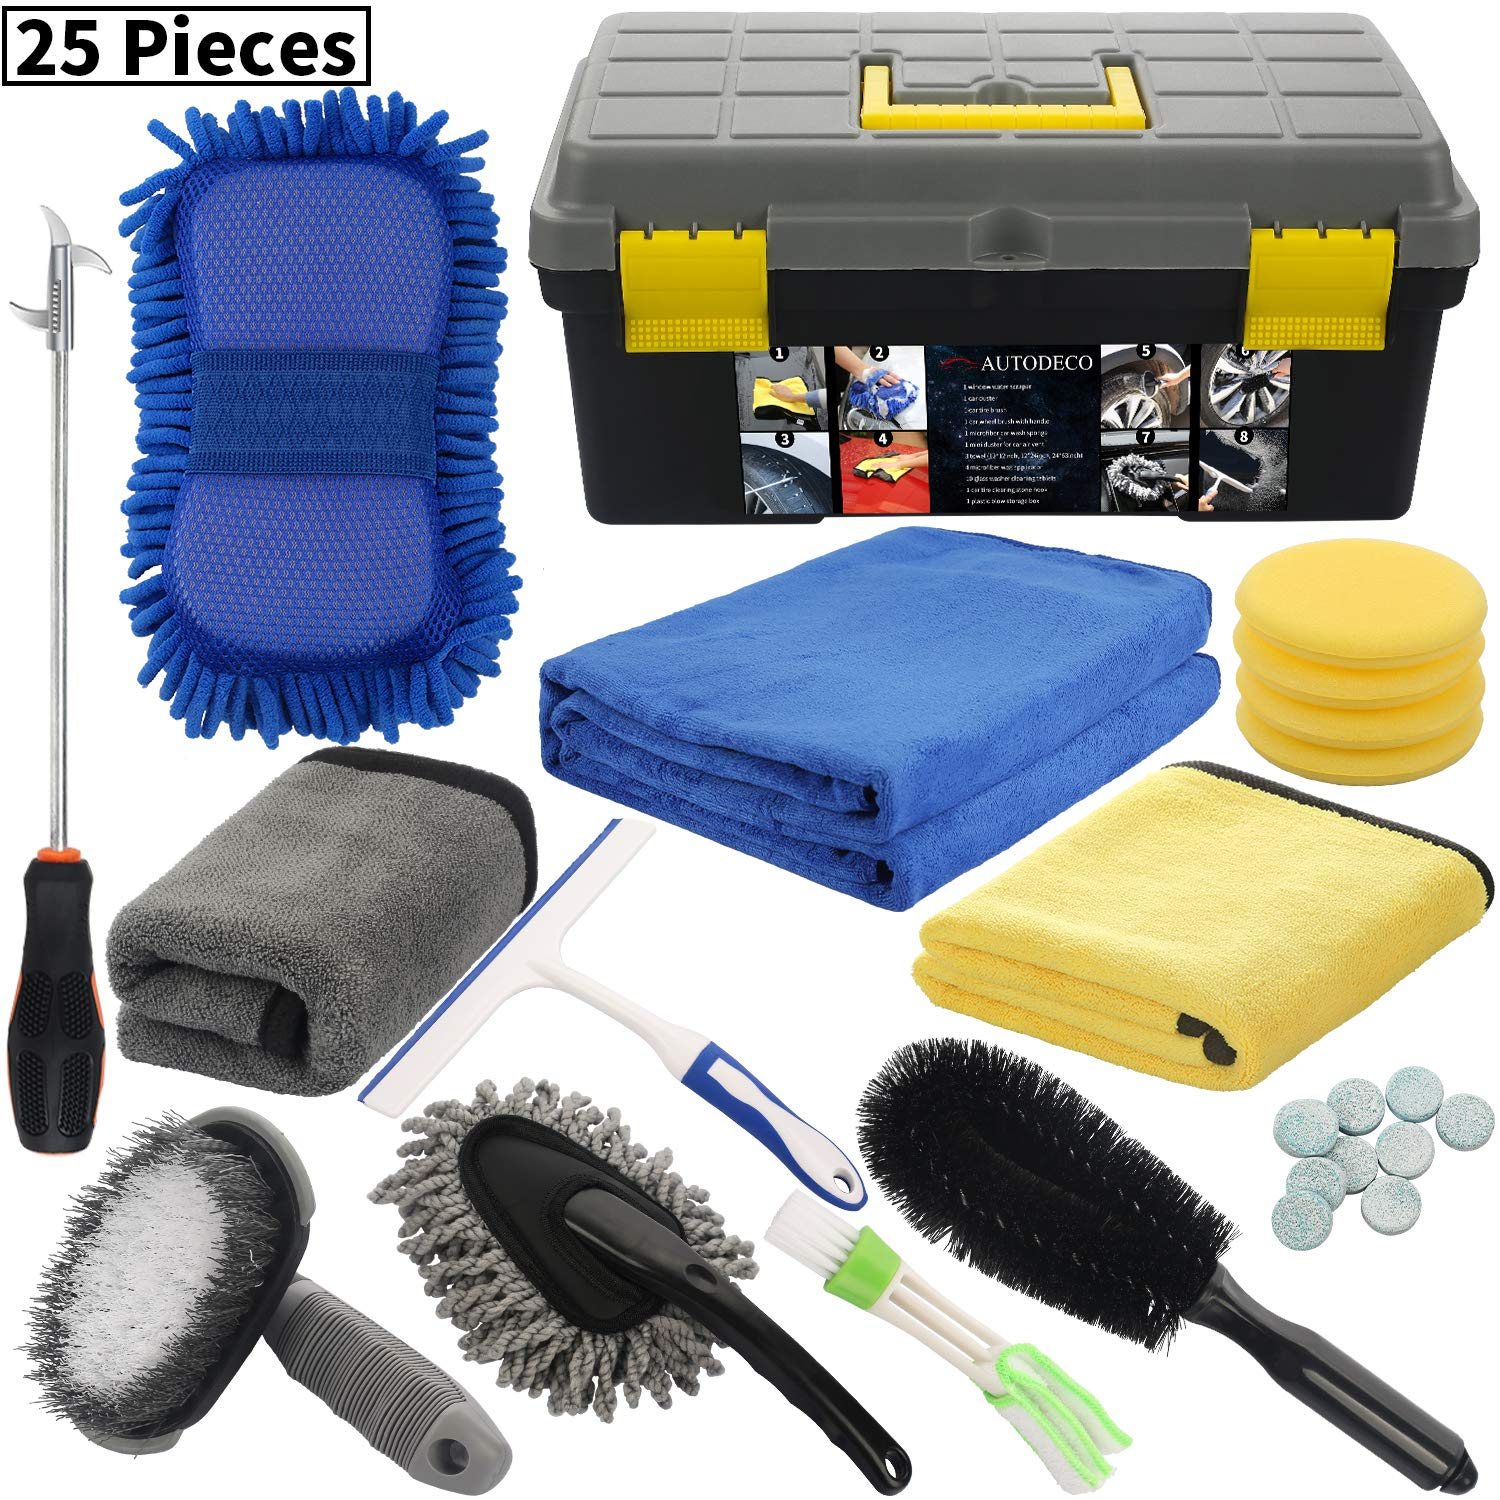 AUTODECO 25Pcs Microfibre Car Wash Cleaning Tools Set Gloves Towels Applicator Pads Sponge Car Care Kit Wheel Brush Car Cleaning Kit with Storage Box Black Grey Yellow Handle